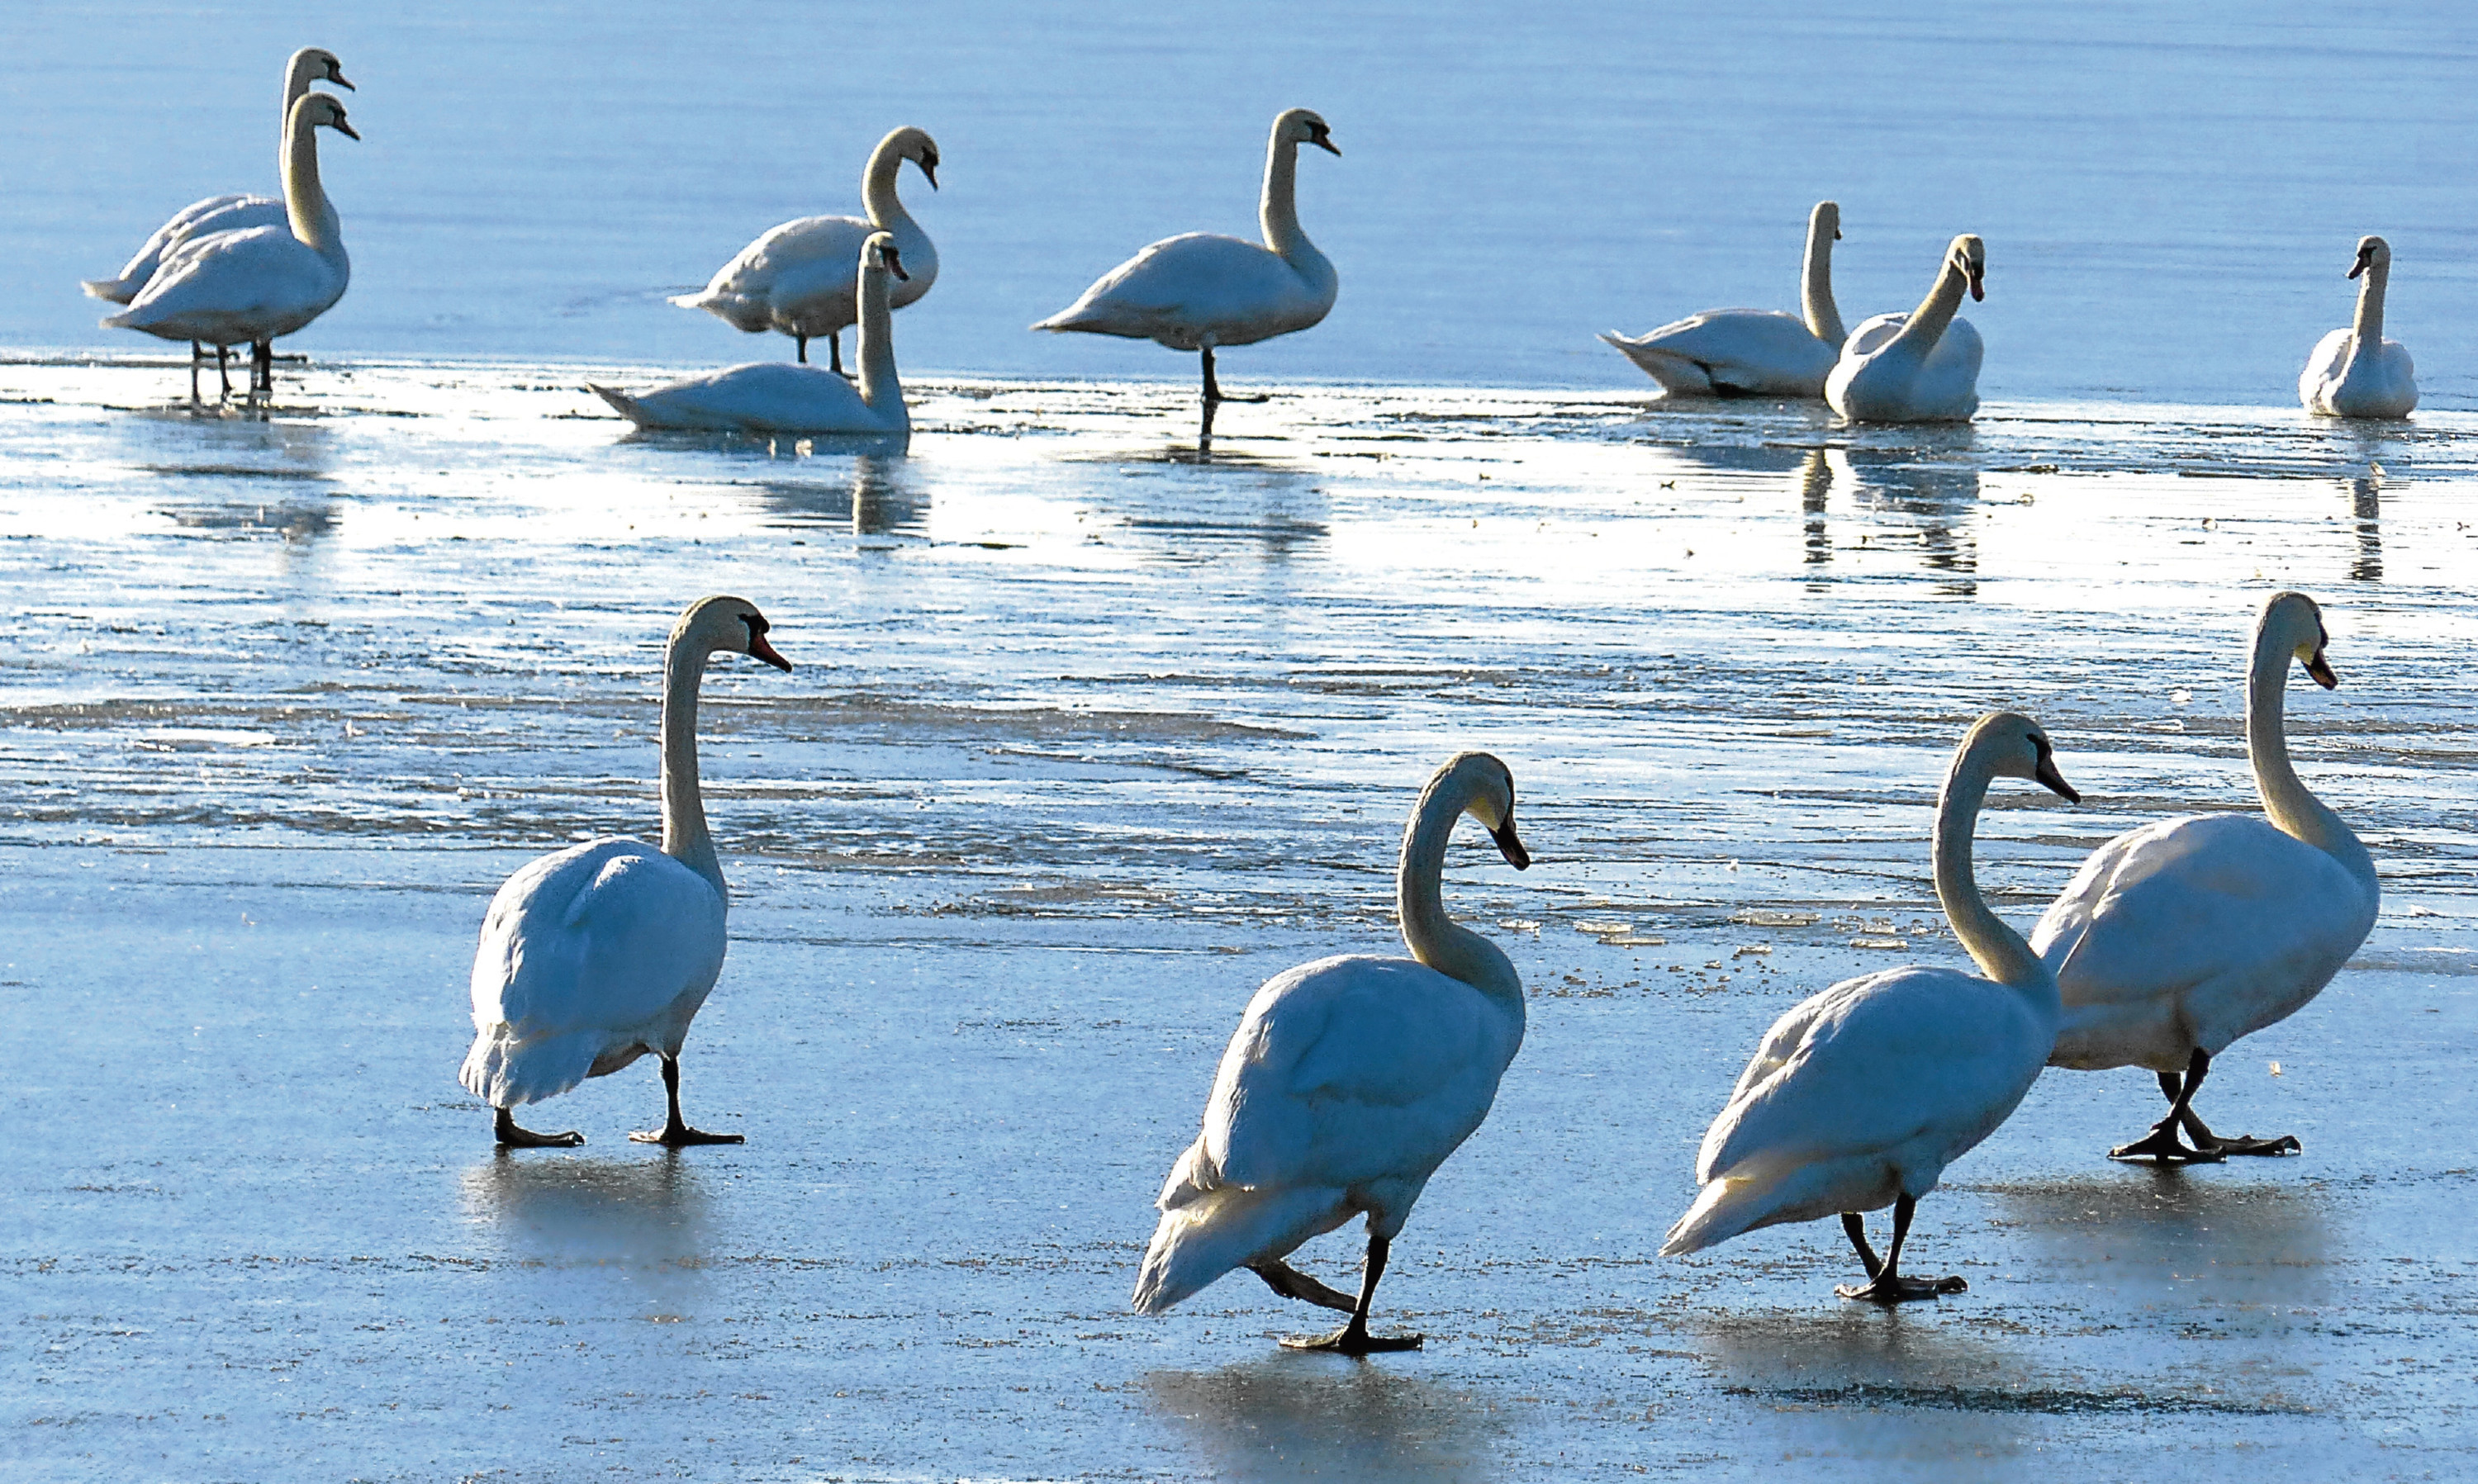 Swans on a frozen Loch Leven, yet none of them are white, showing Jim's fascination with the way artists see the world differently.